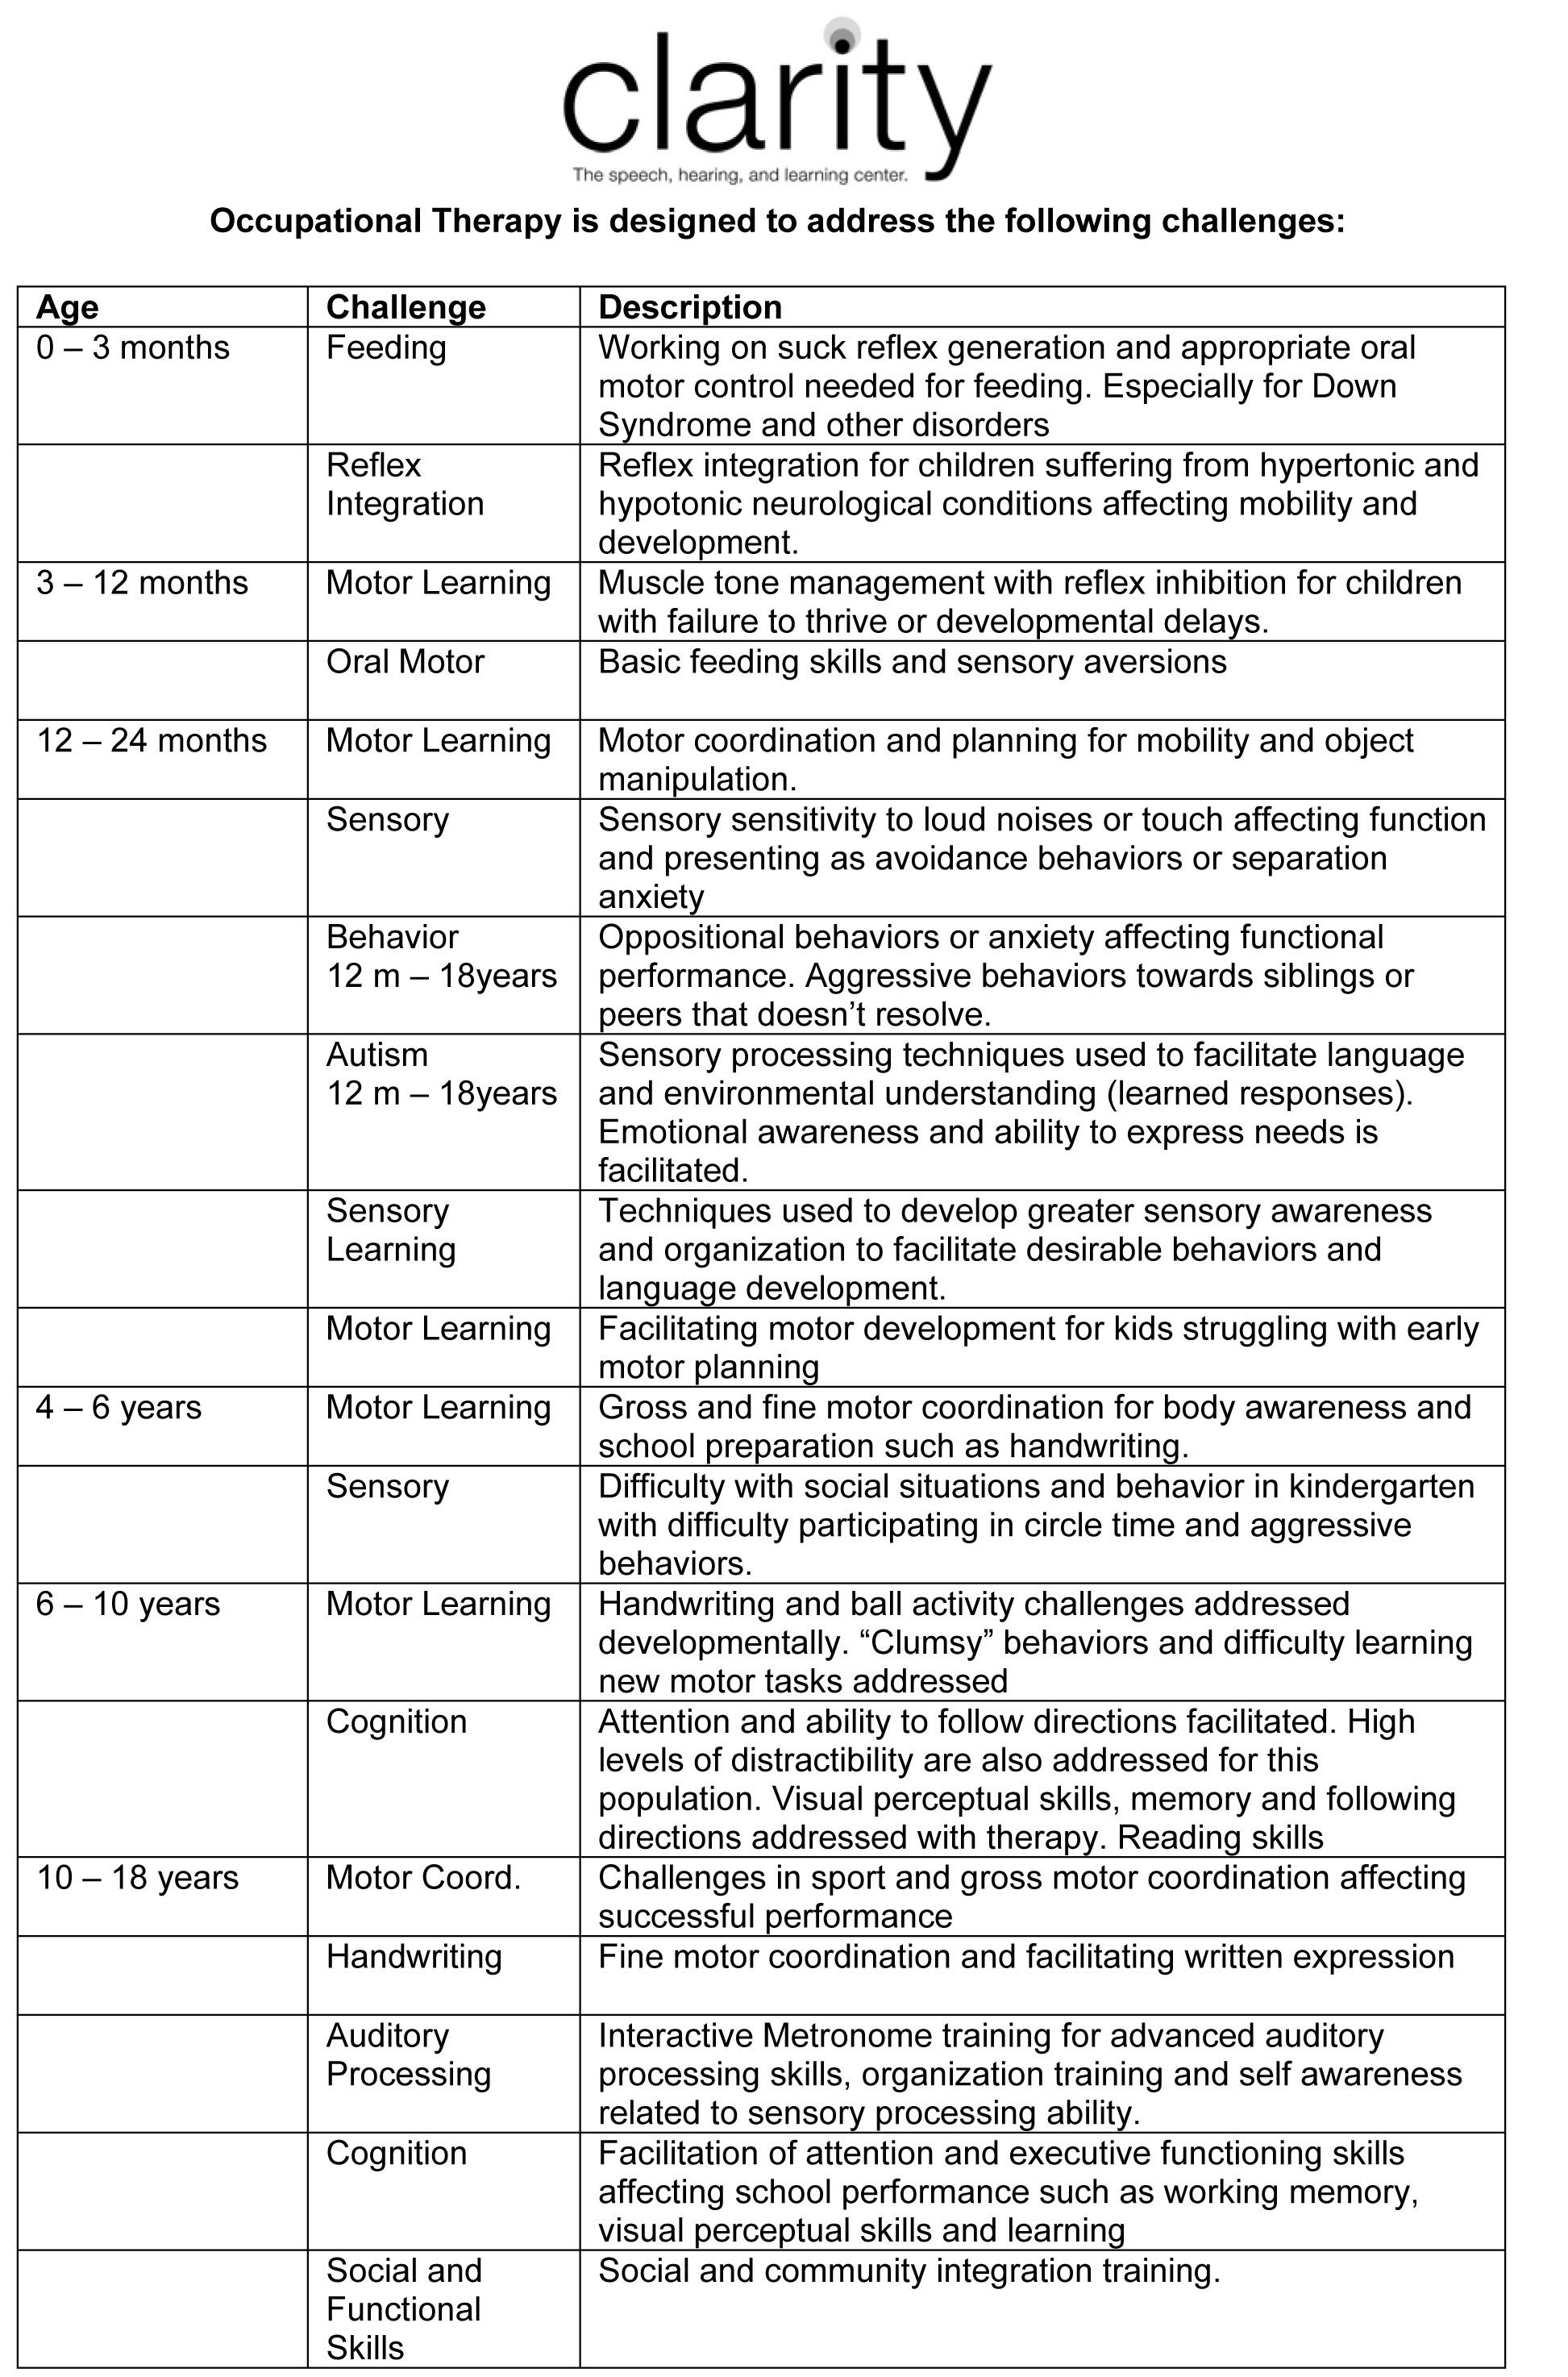 Clarity Has Created A Developmental Milestones Chart To Display The Challenges That The